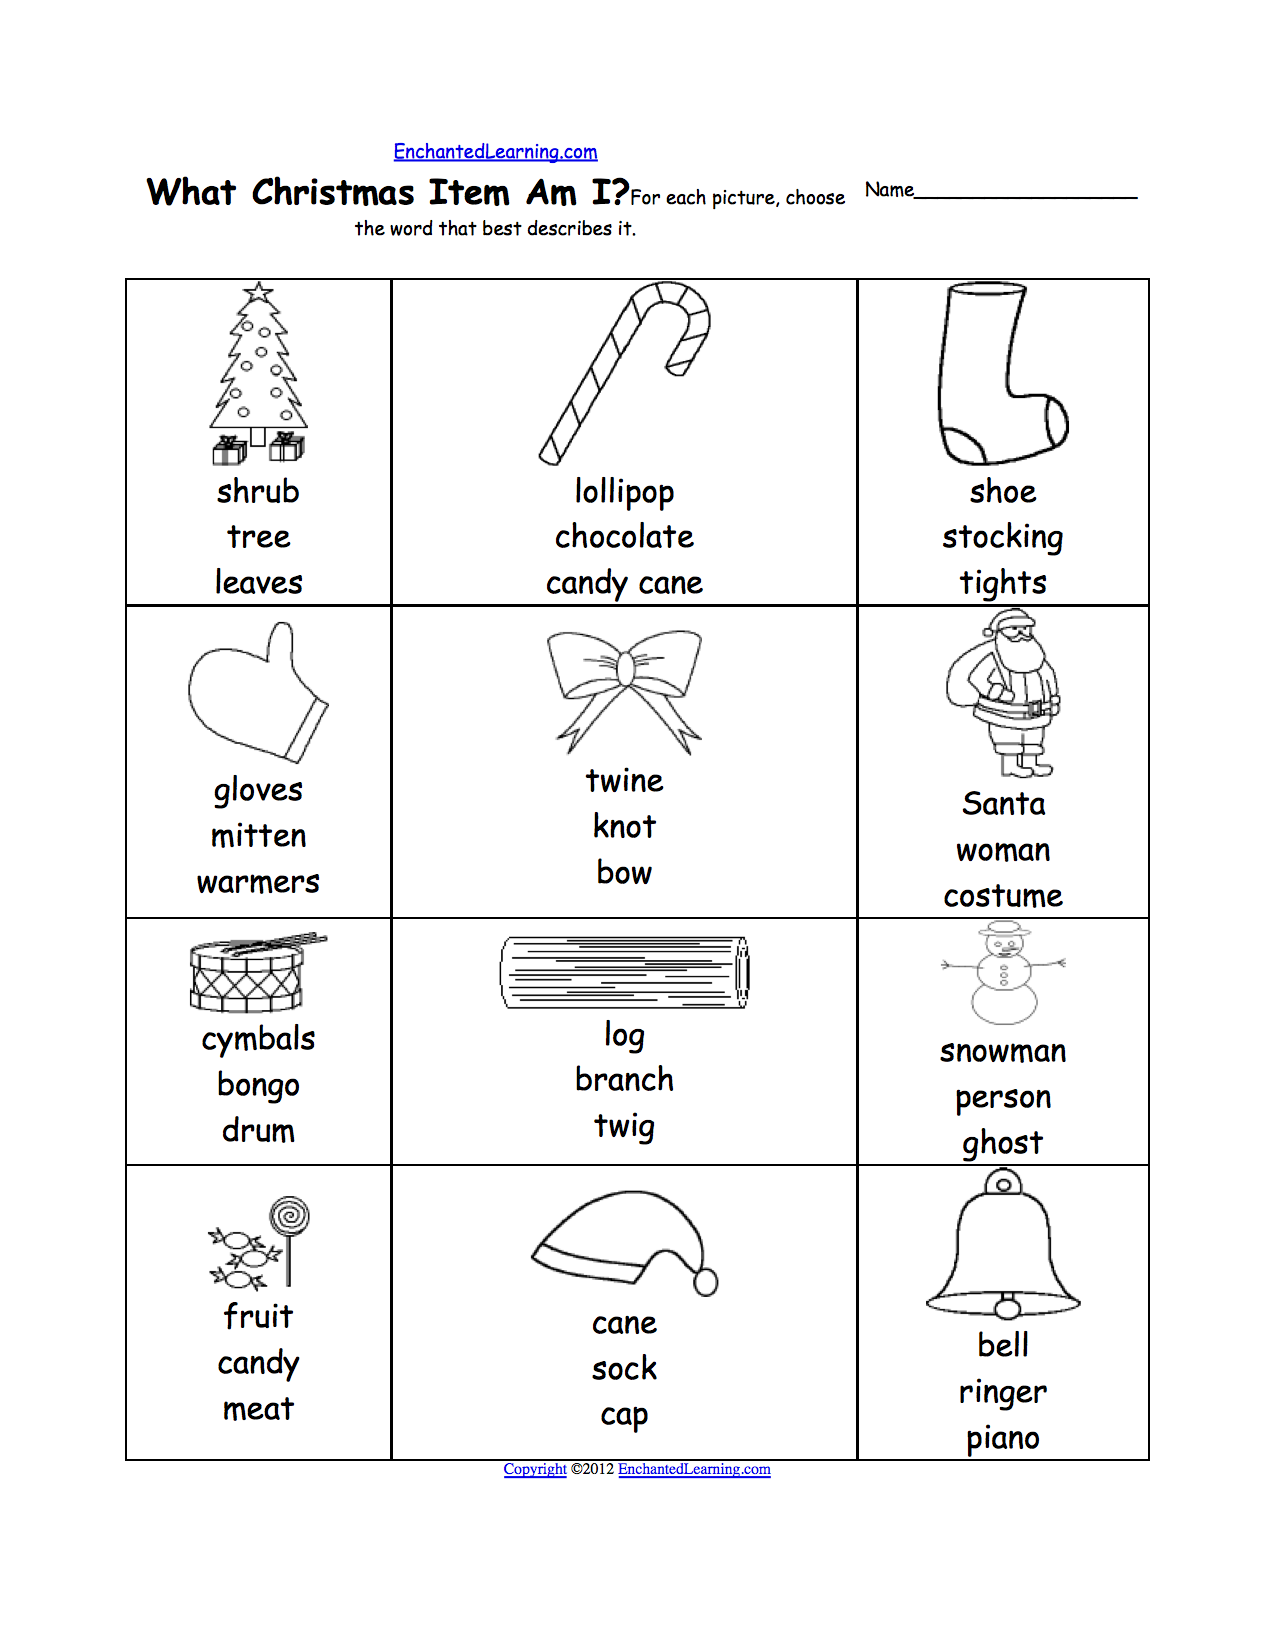 Worksheets Christmas Worksheets For Kindergarten christmas crafts for kids enchantedlearning com